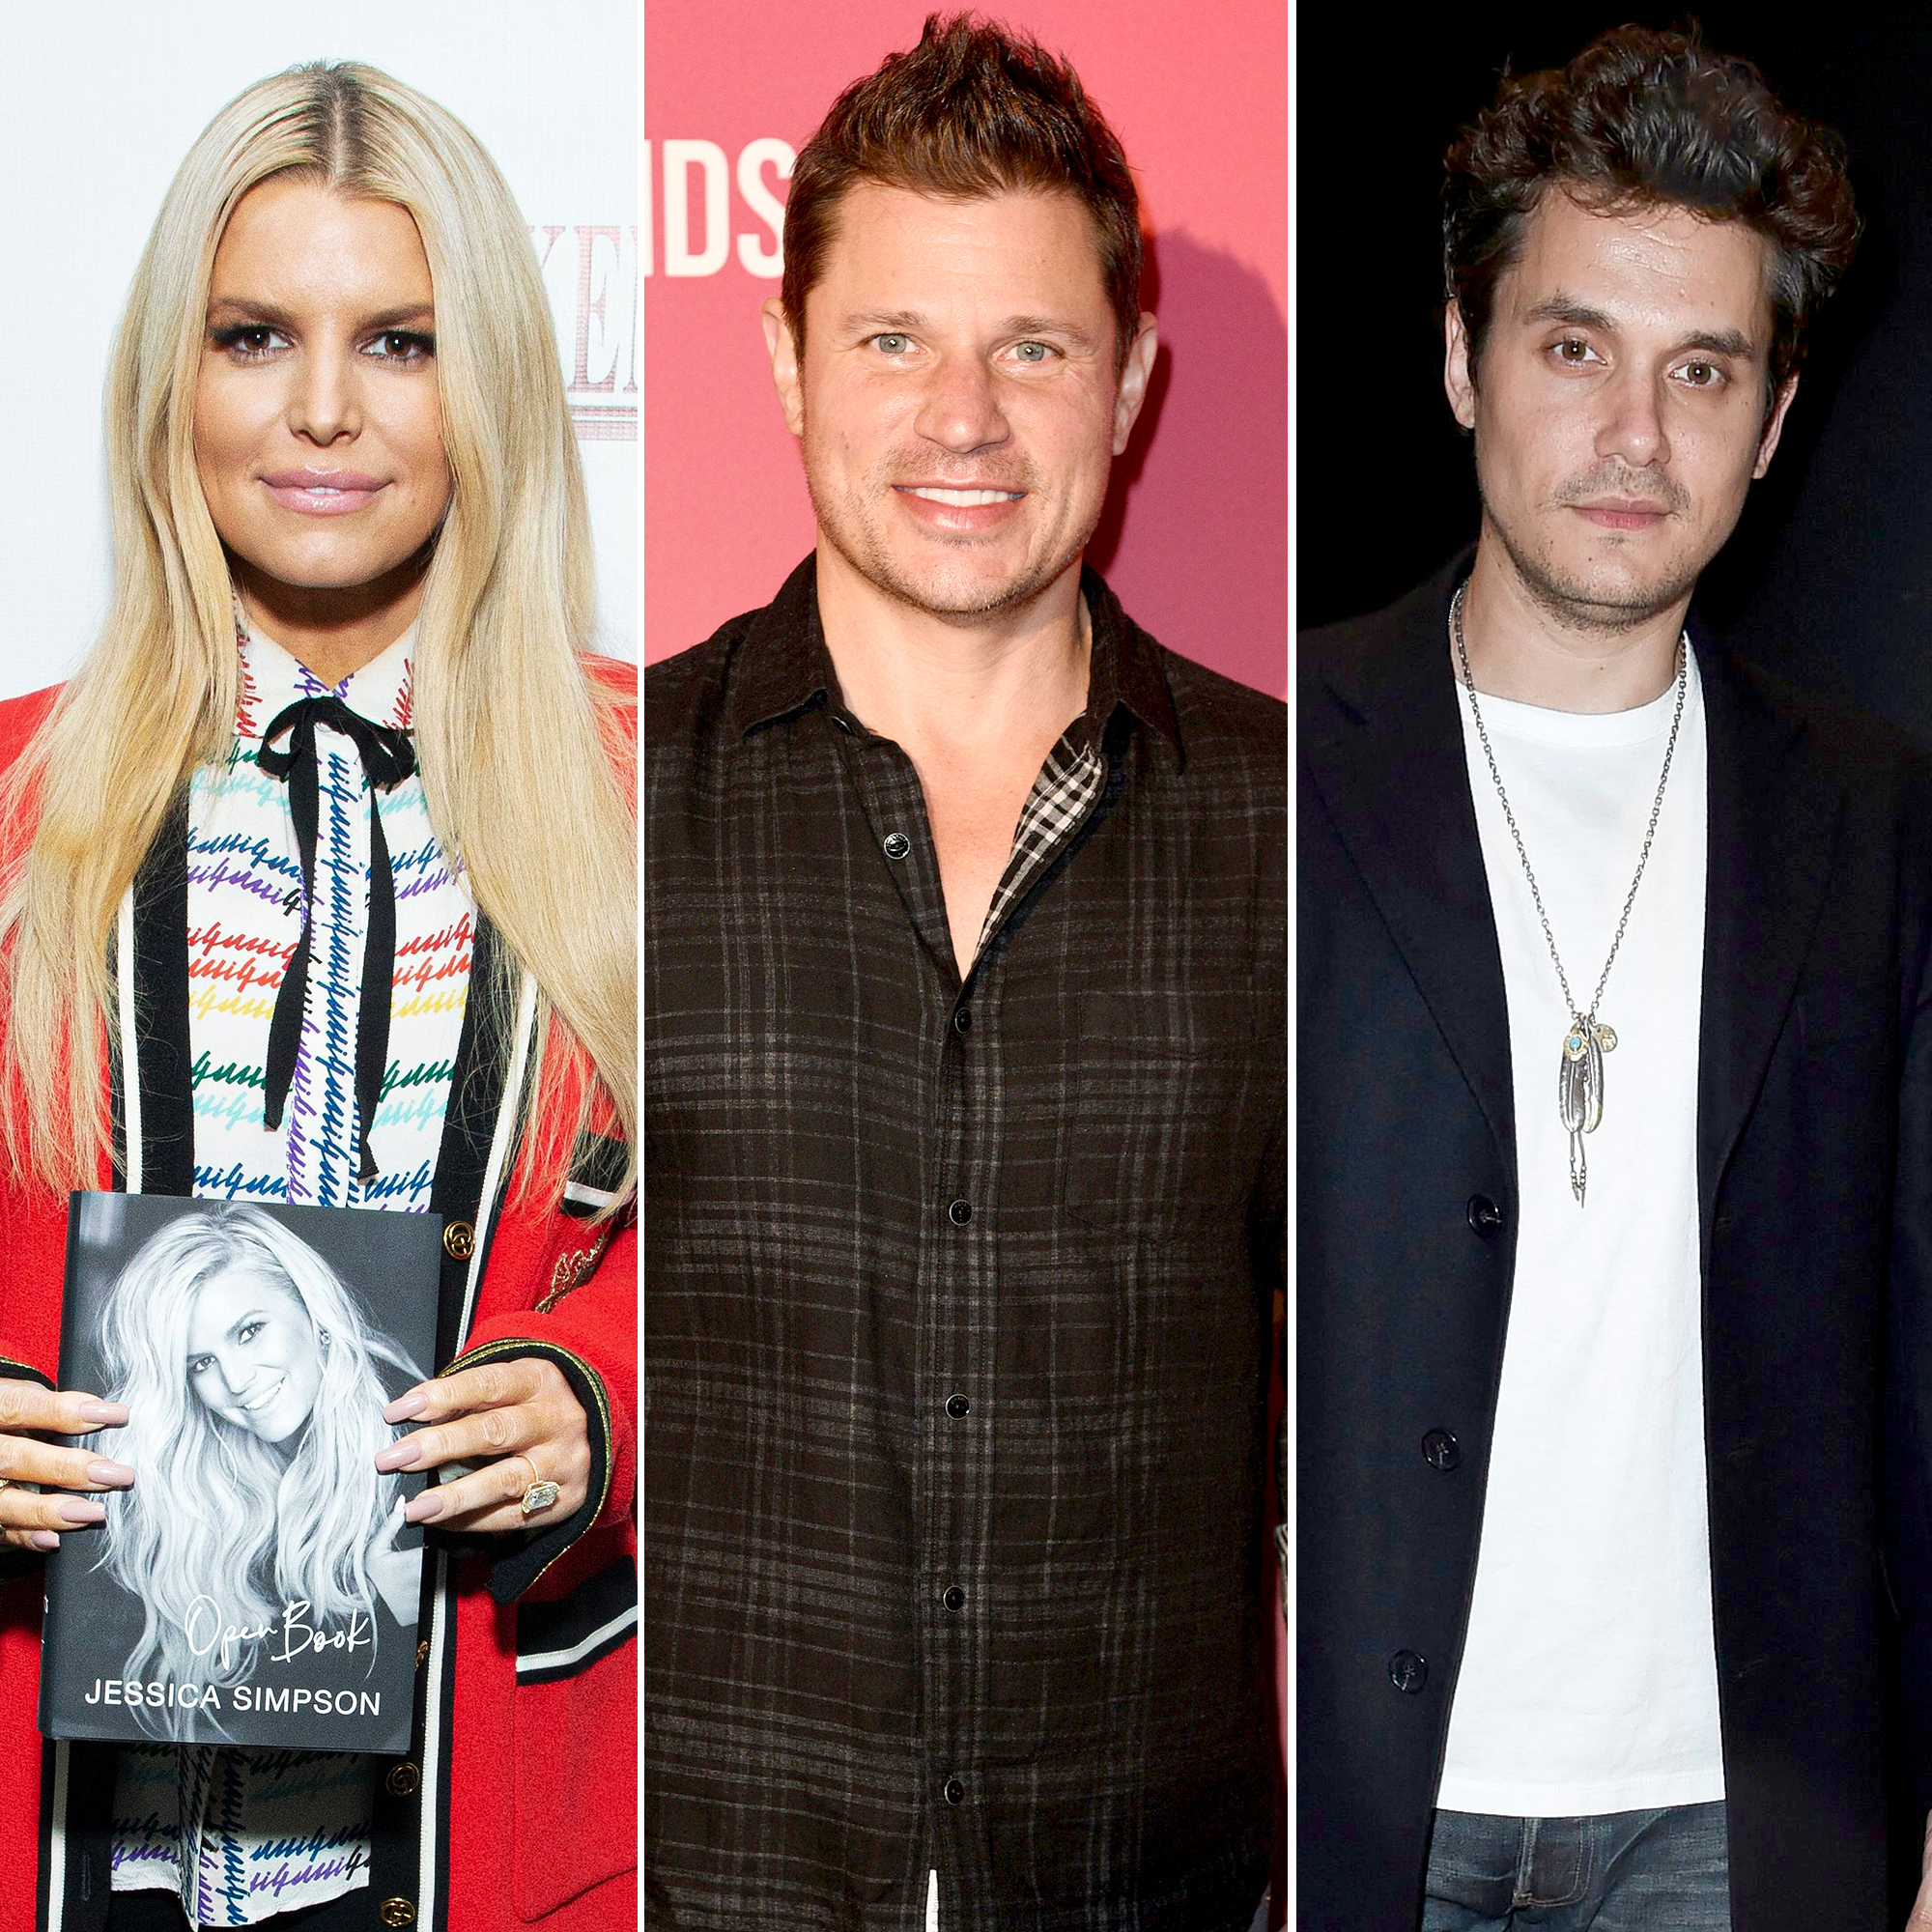 Jessica-Simpson-Didn't-Expect-Nick-Lachey,-John-Mayer-or-Other-Exes-to-Reach-Out-About-Her-Book